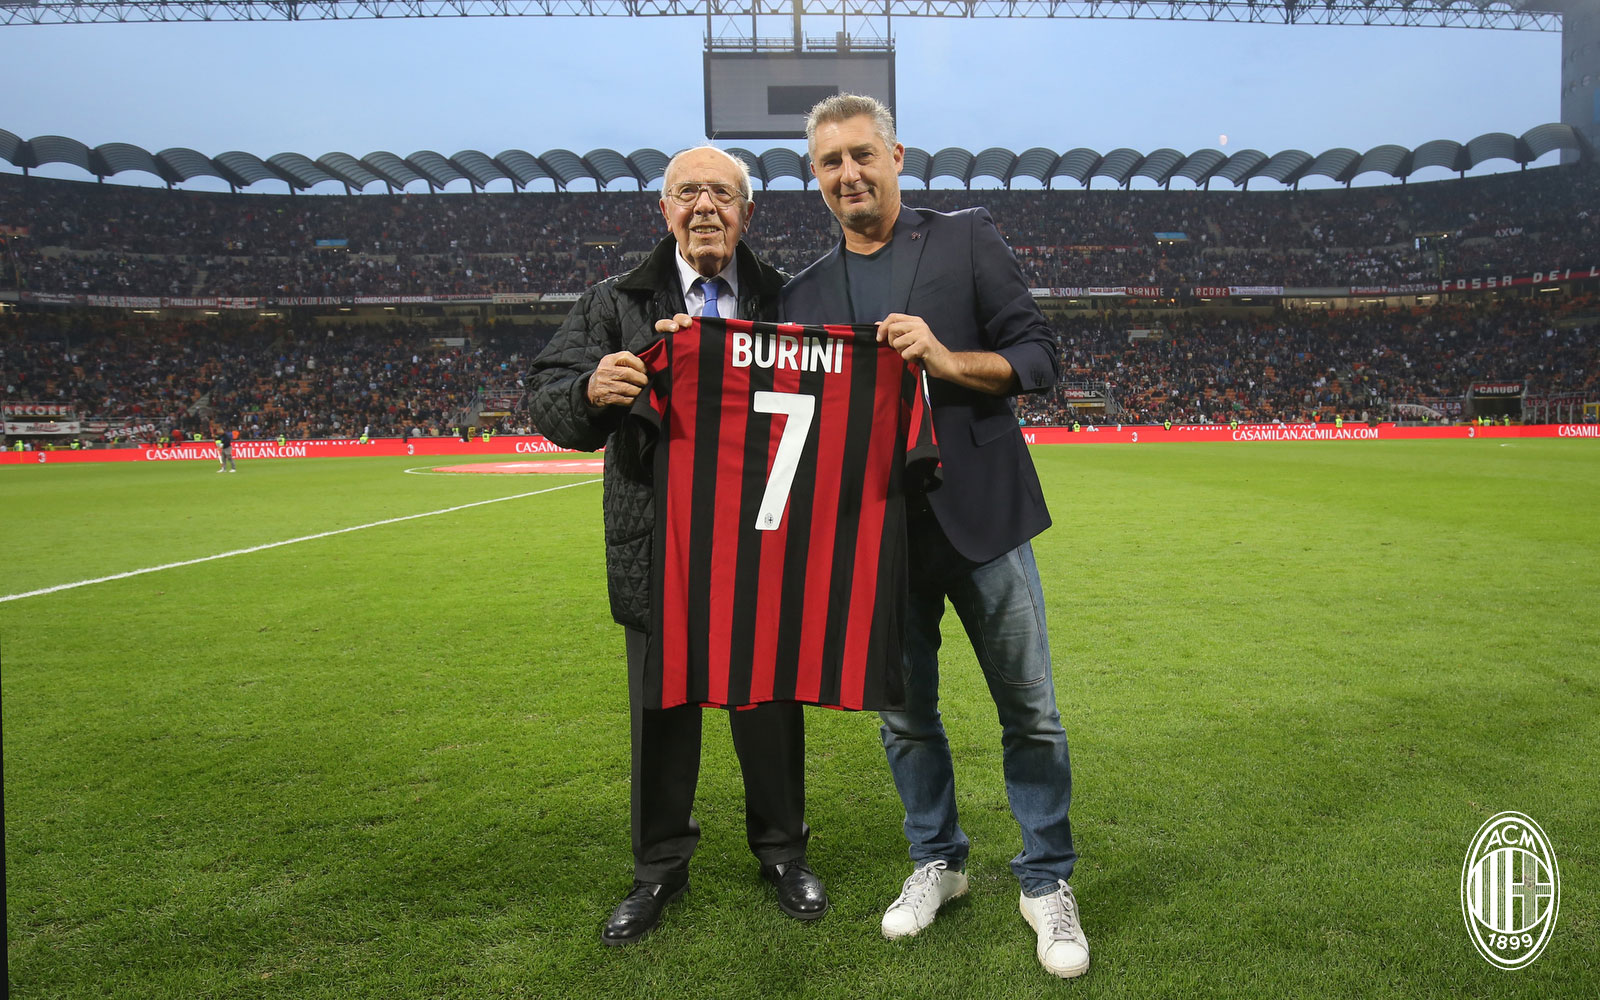 Daniele Massaro and Renzo Burini before Milan-Roma at Stadio San Siro on October 1, 2017. (@acmilan.com)